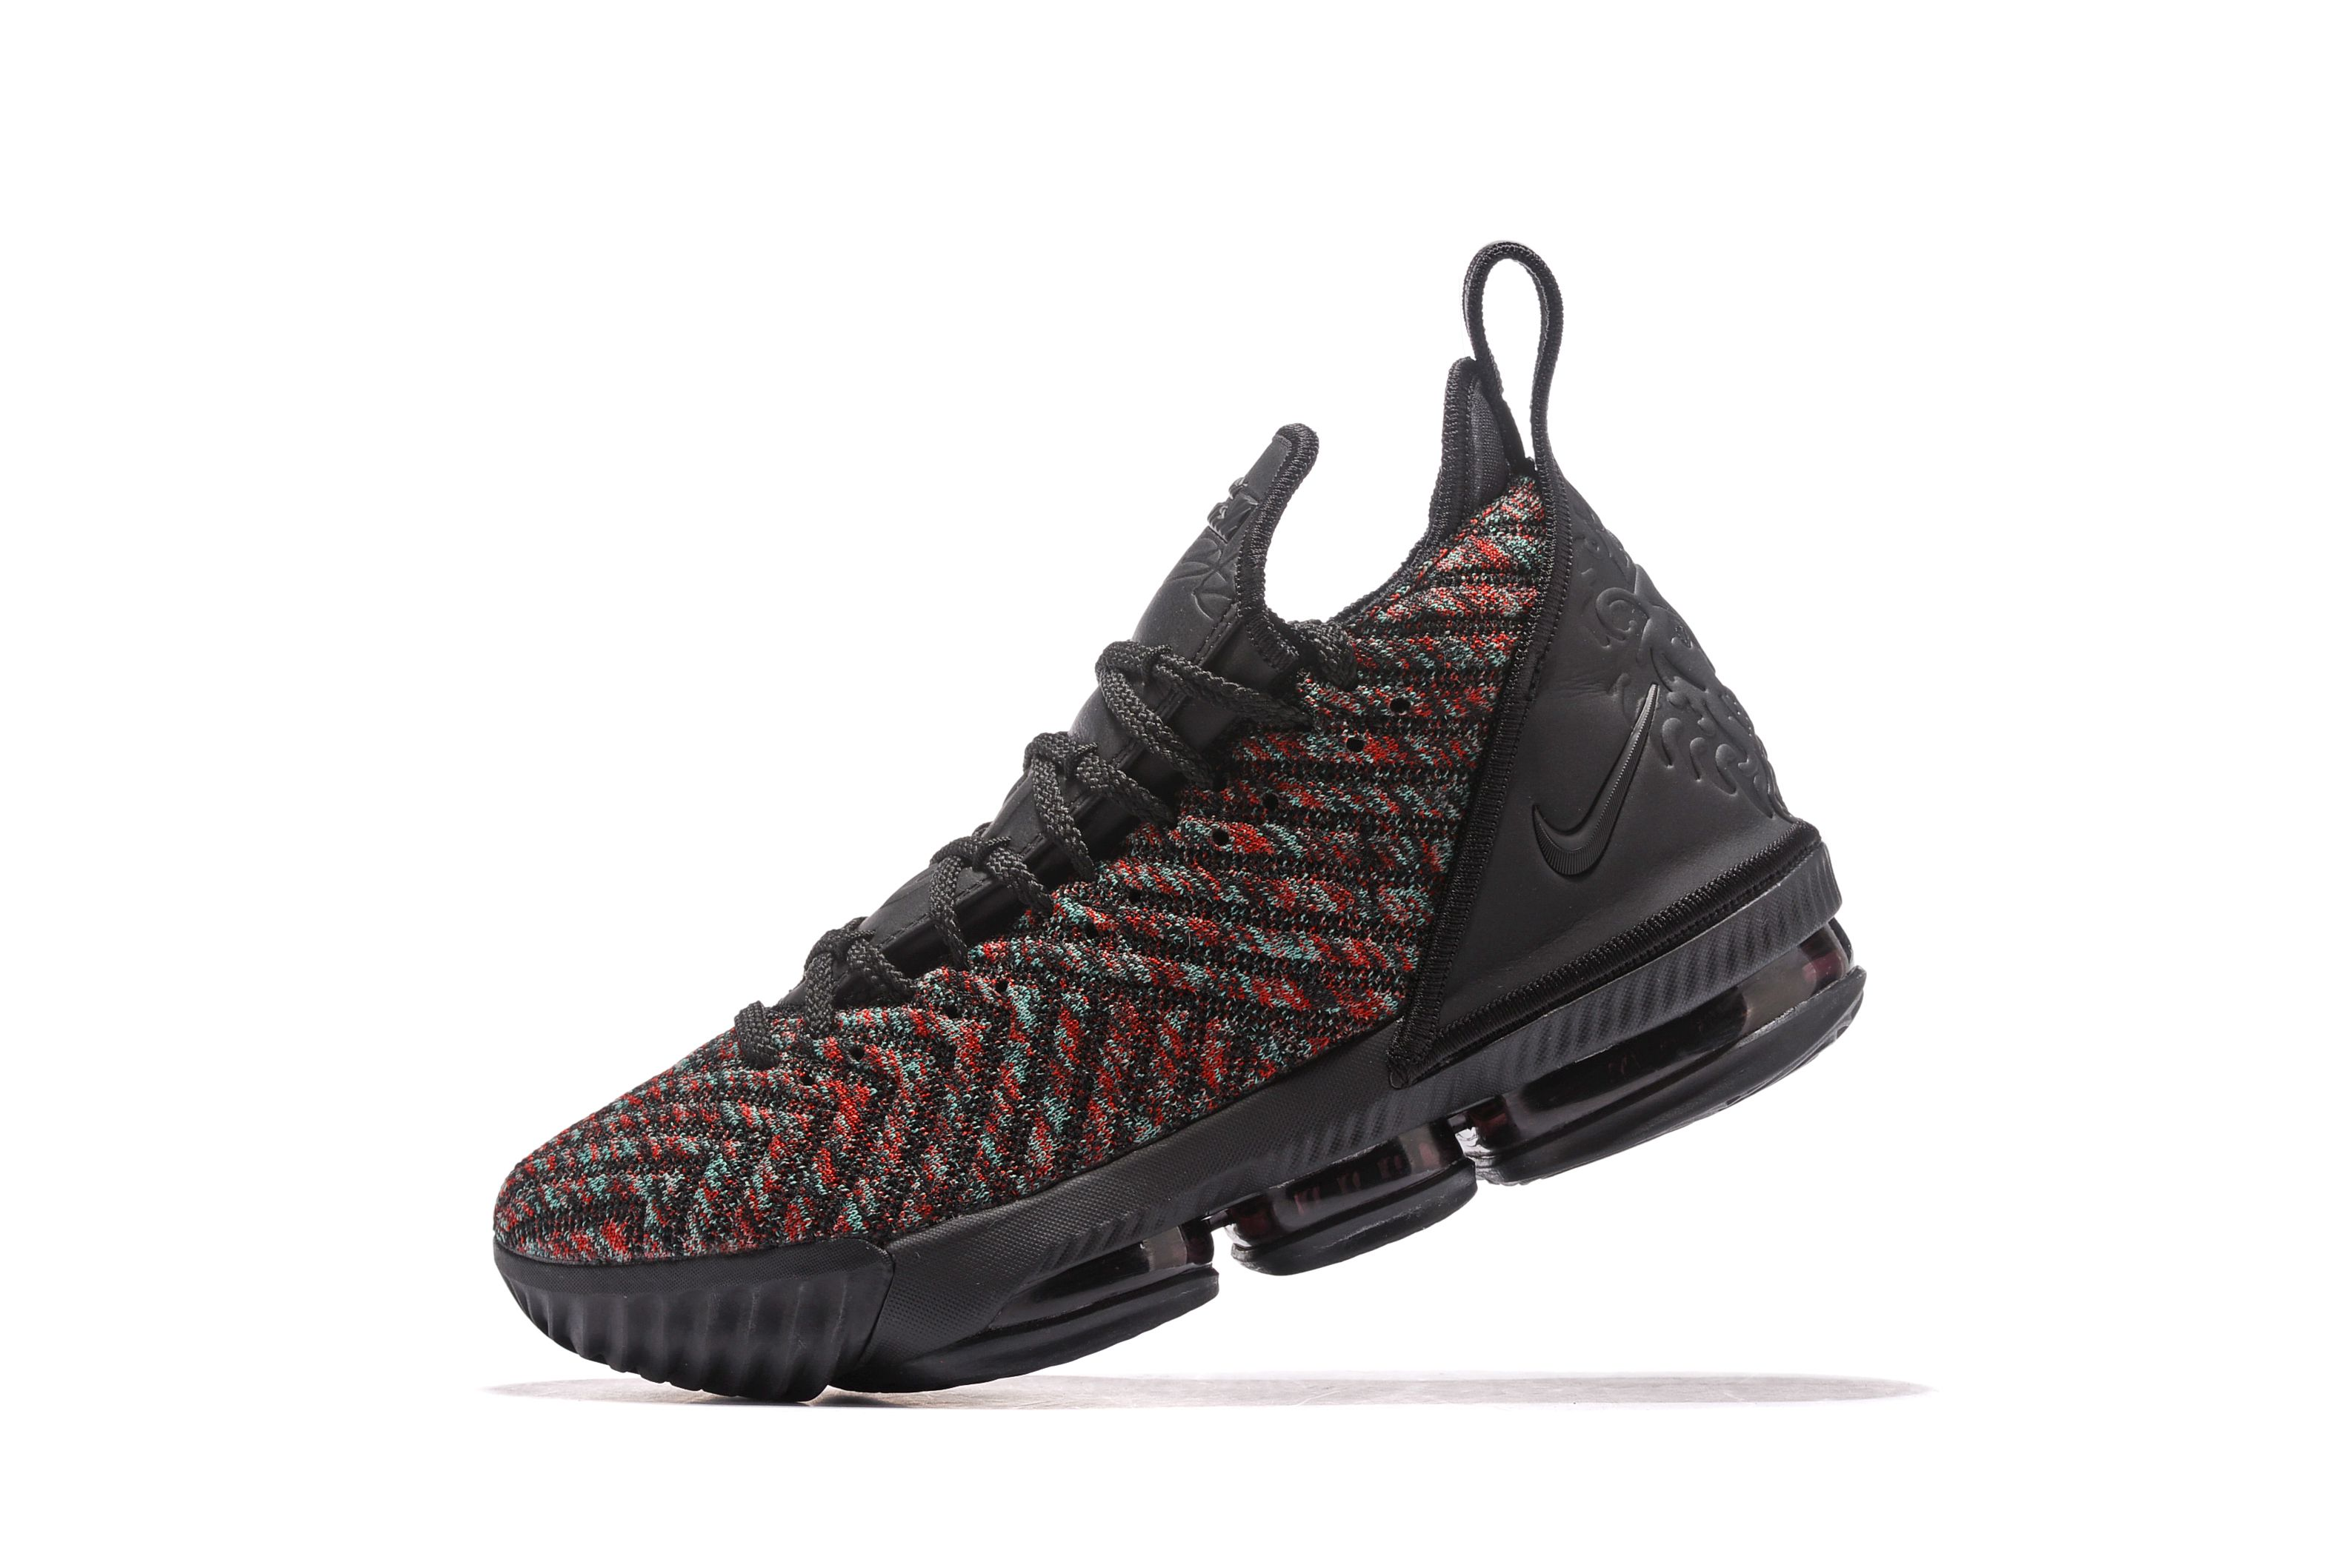 e26f824411f Nike LeBron 16 Black Multi-Color Basketball Shoes For Sale